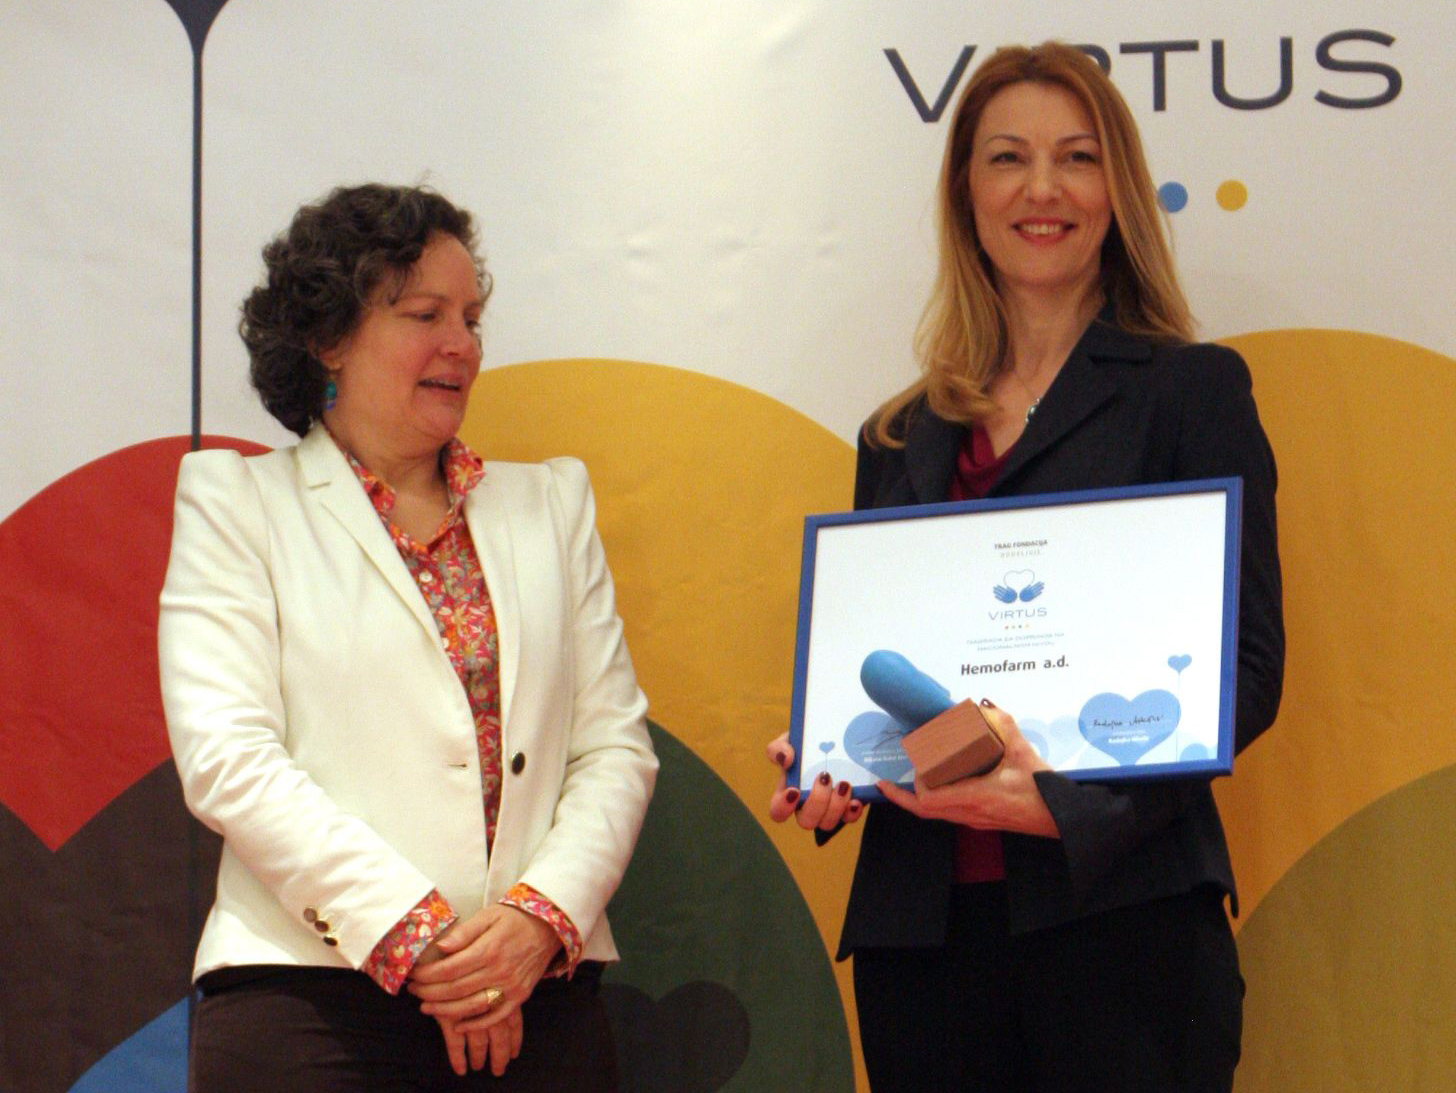 Hemofarm received VIRTUS, principal award for philanthropy